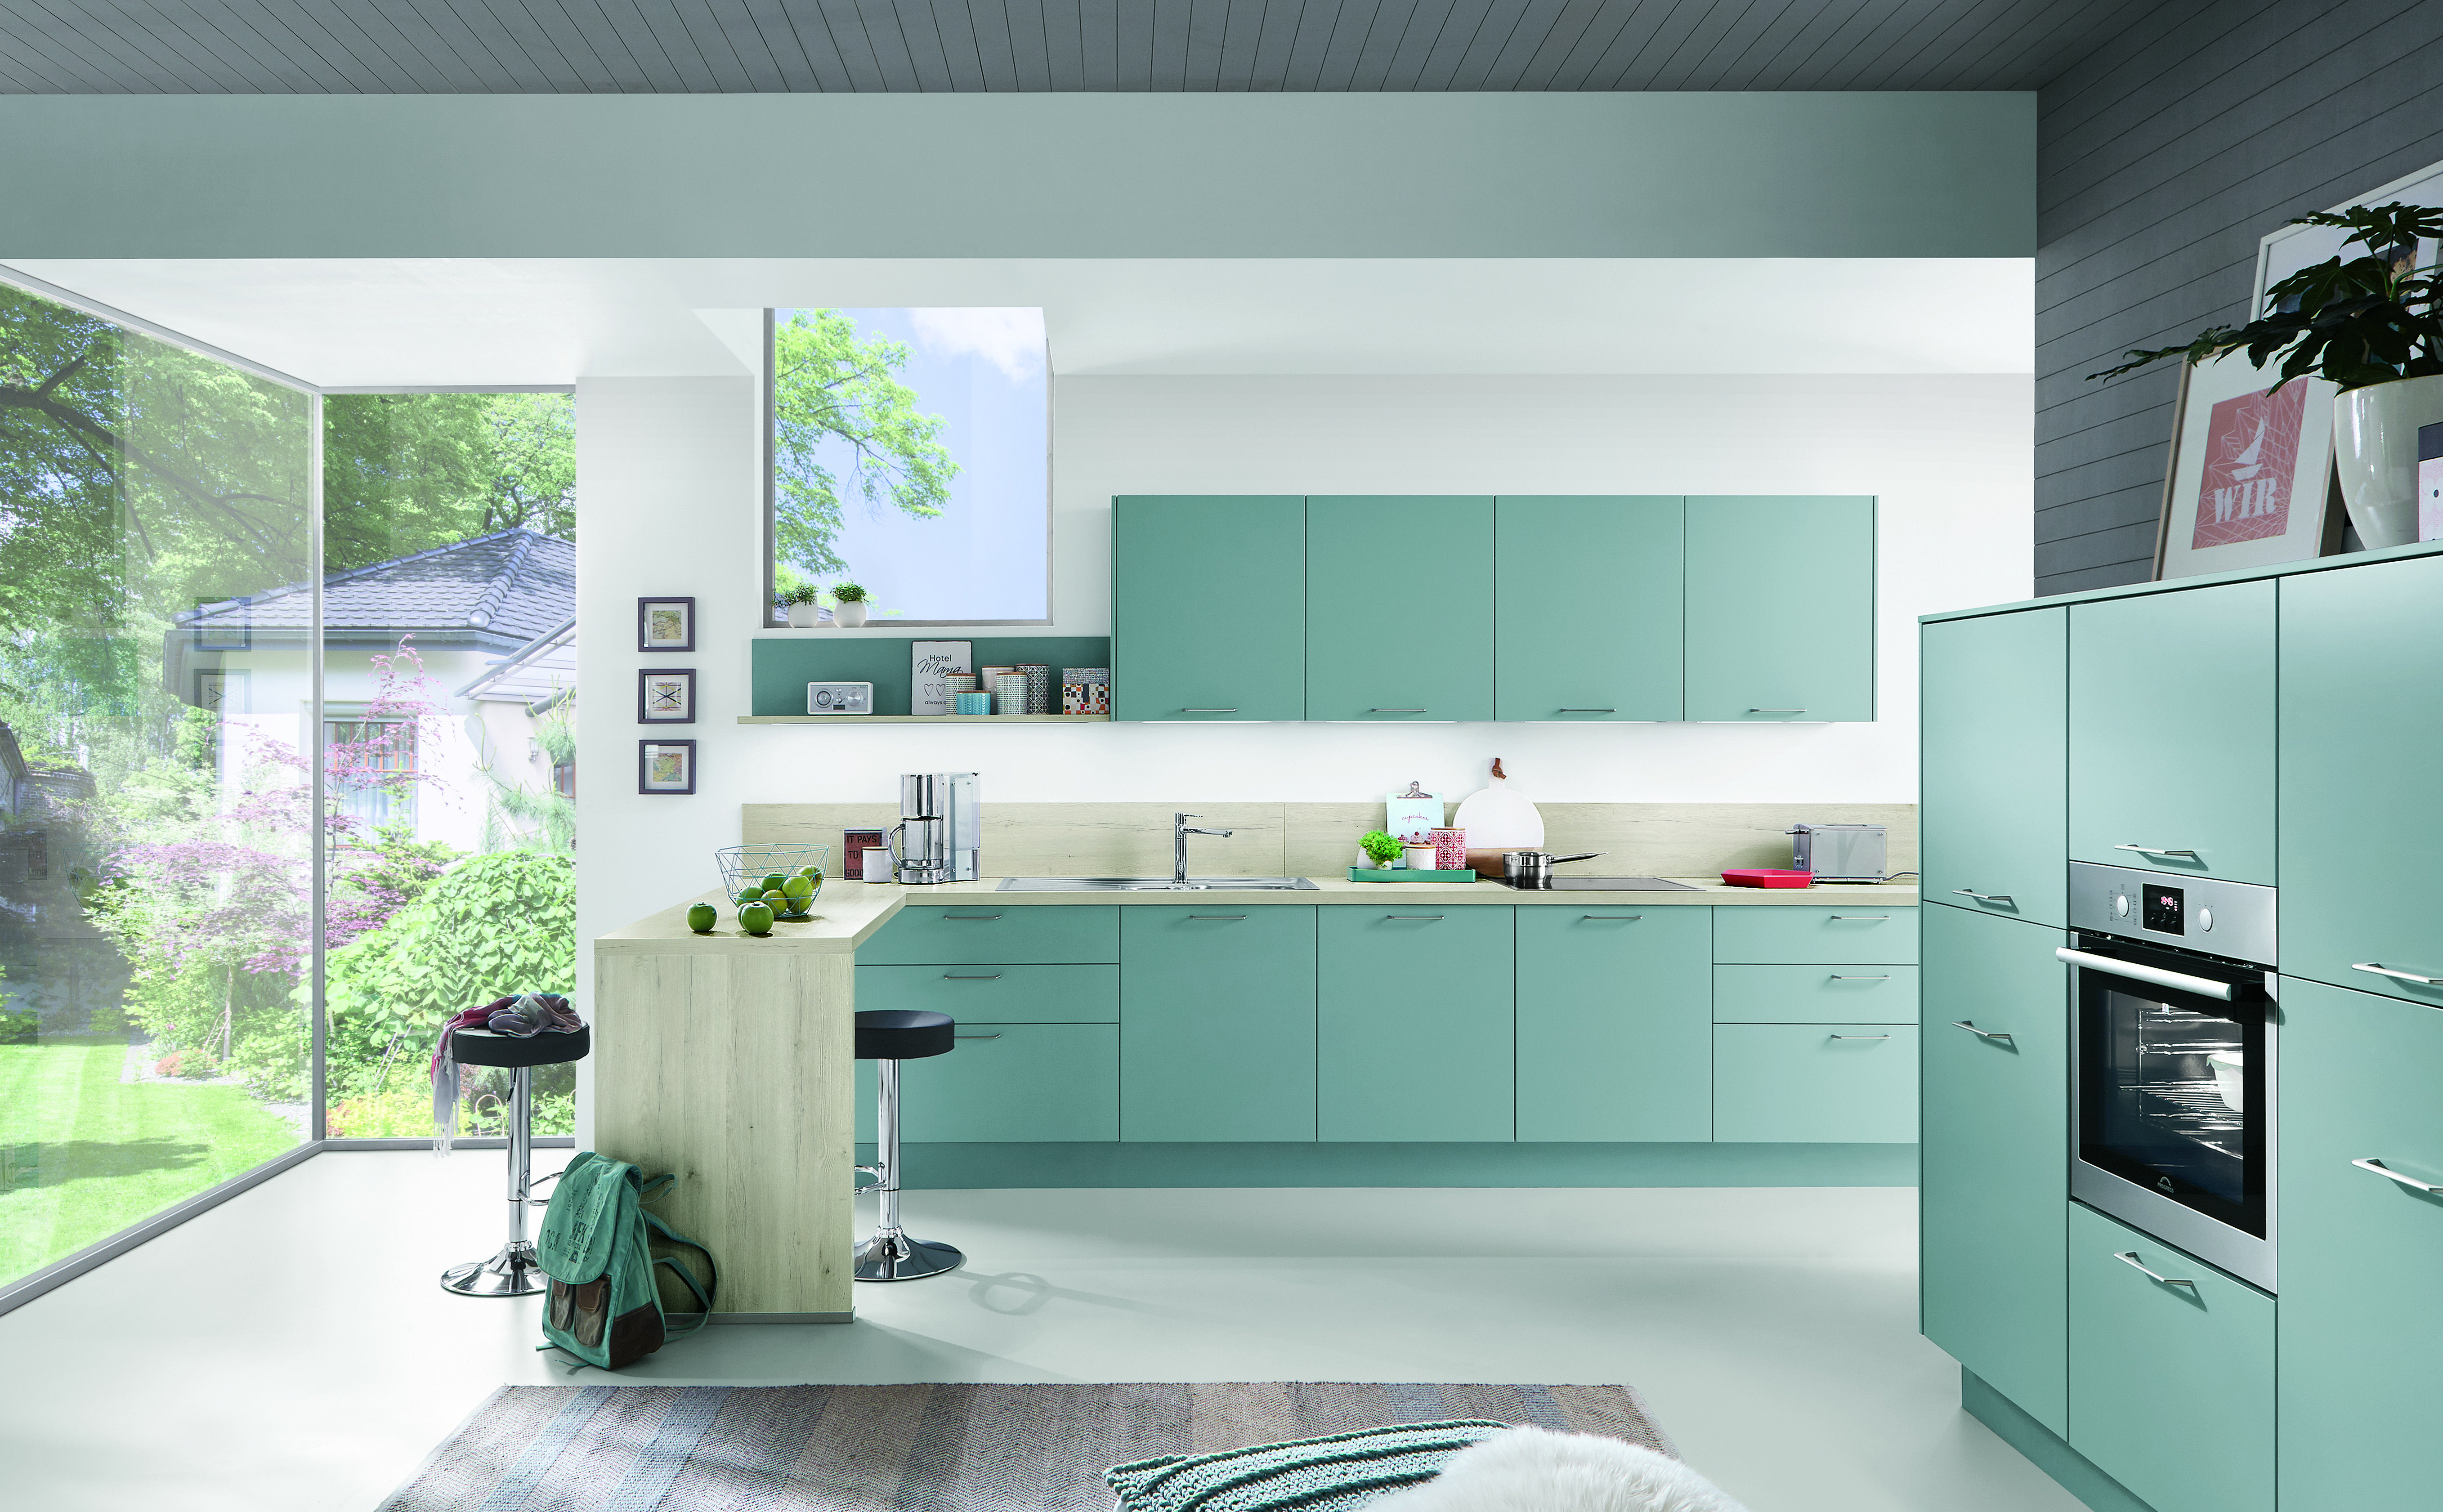 The 1 Kitchen Manufacturer By Volume In The World Nobilia Builds Intelligently Designed Kitchens At A Kitchen Color Trends European Kitchens Classic Kitchens